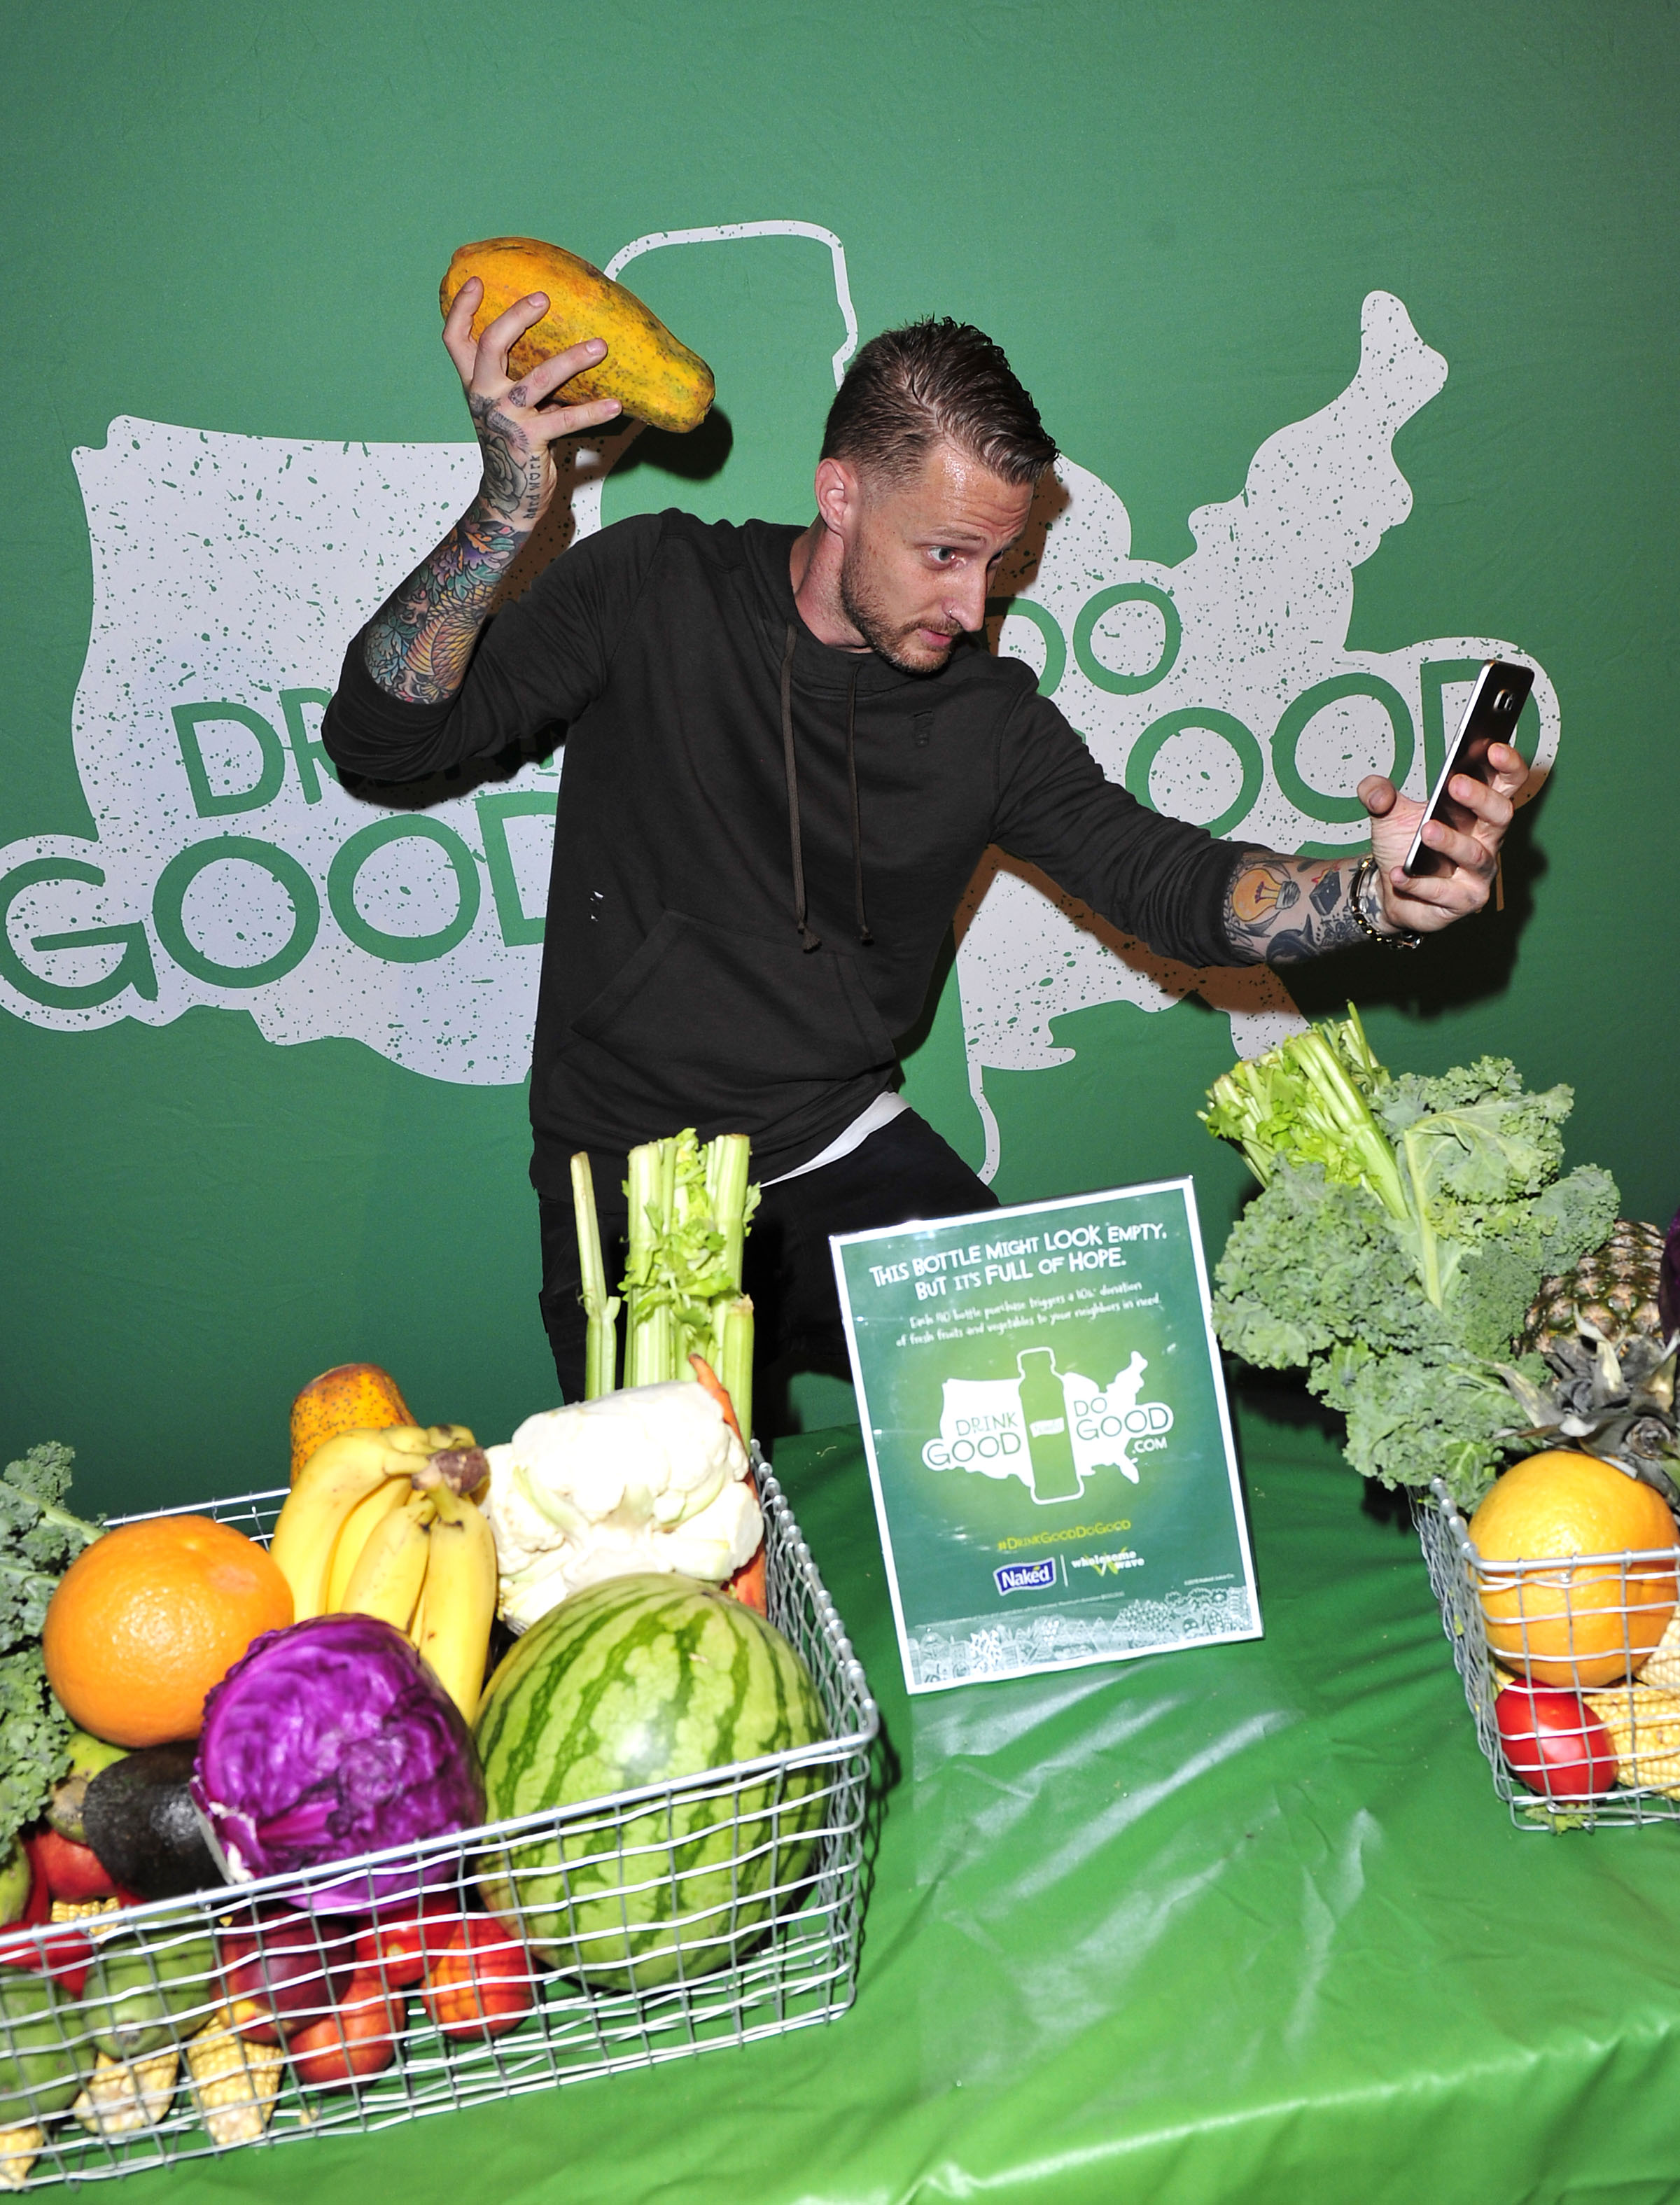 michael voltaggio drink good do good